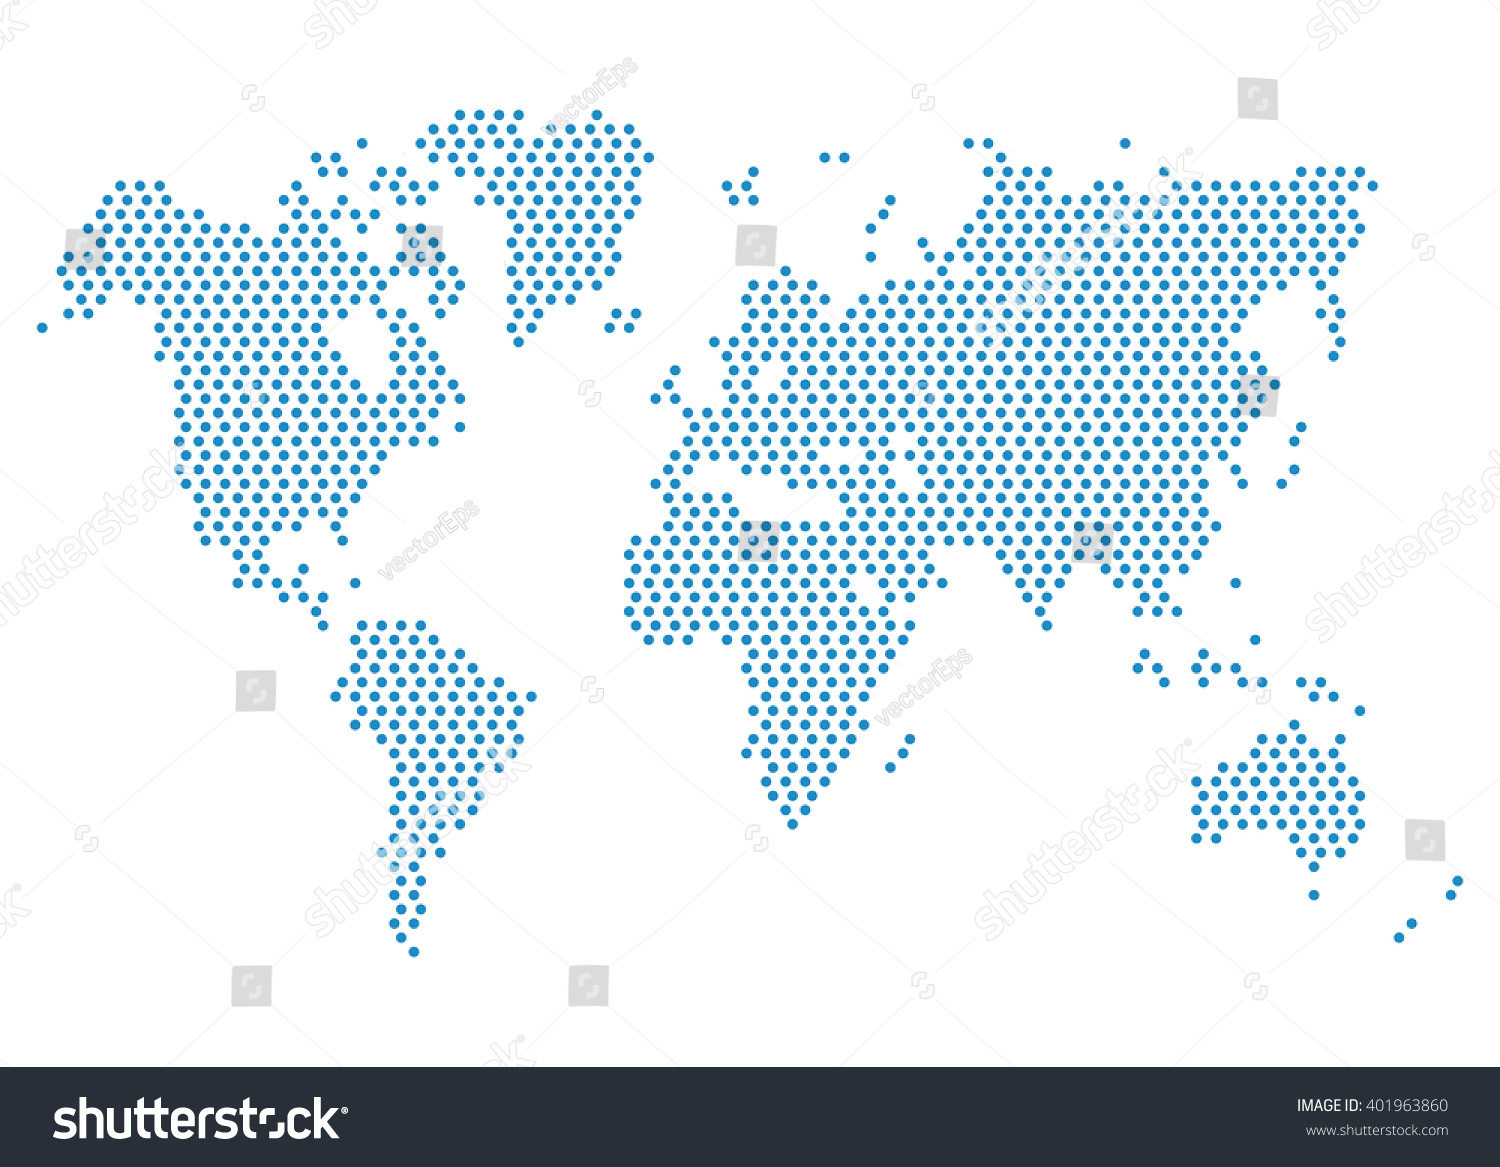 Dot world map vector isolated on stock vector 2018 401963860 dot world map vector isolated on white background blue continent points worldmap template for gumiabroncs